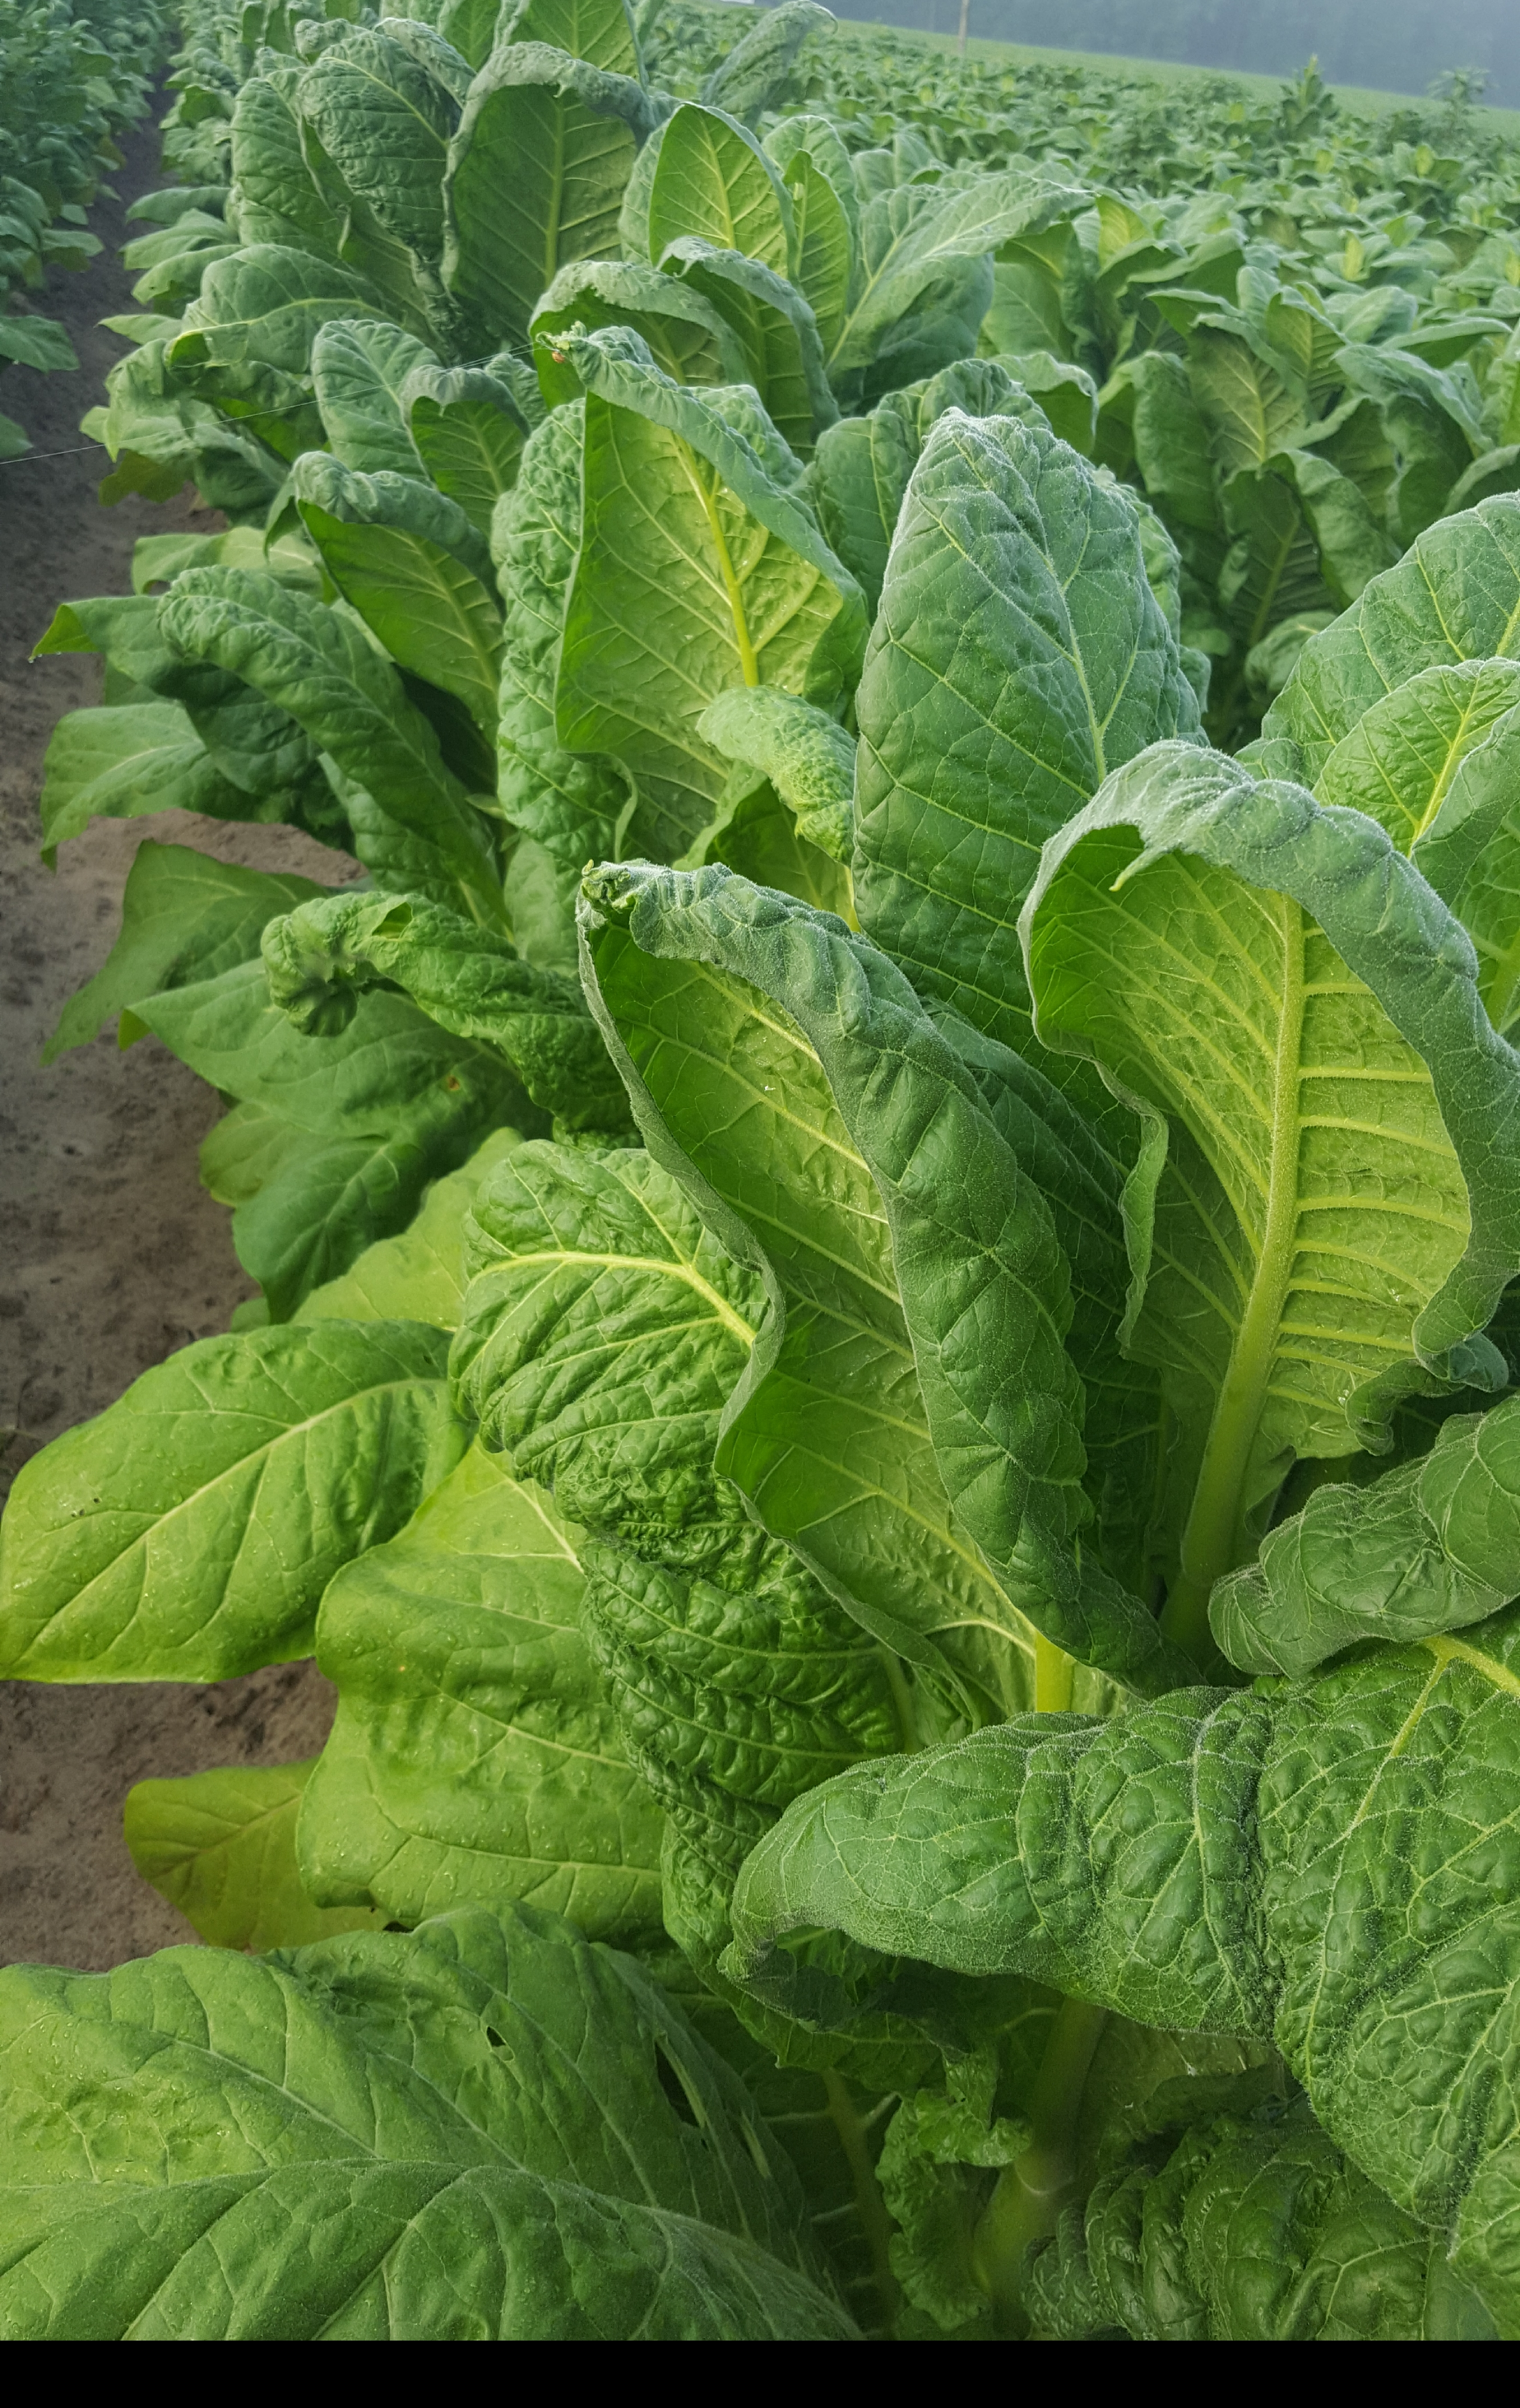 Signs of Dicamba drift on tobacco